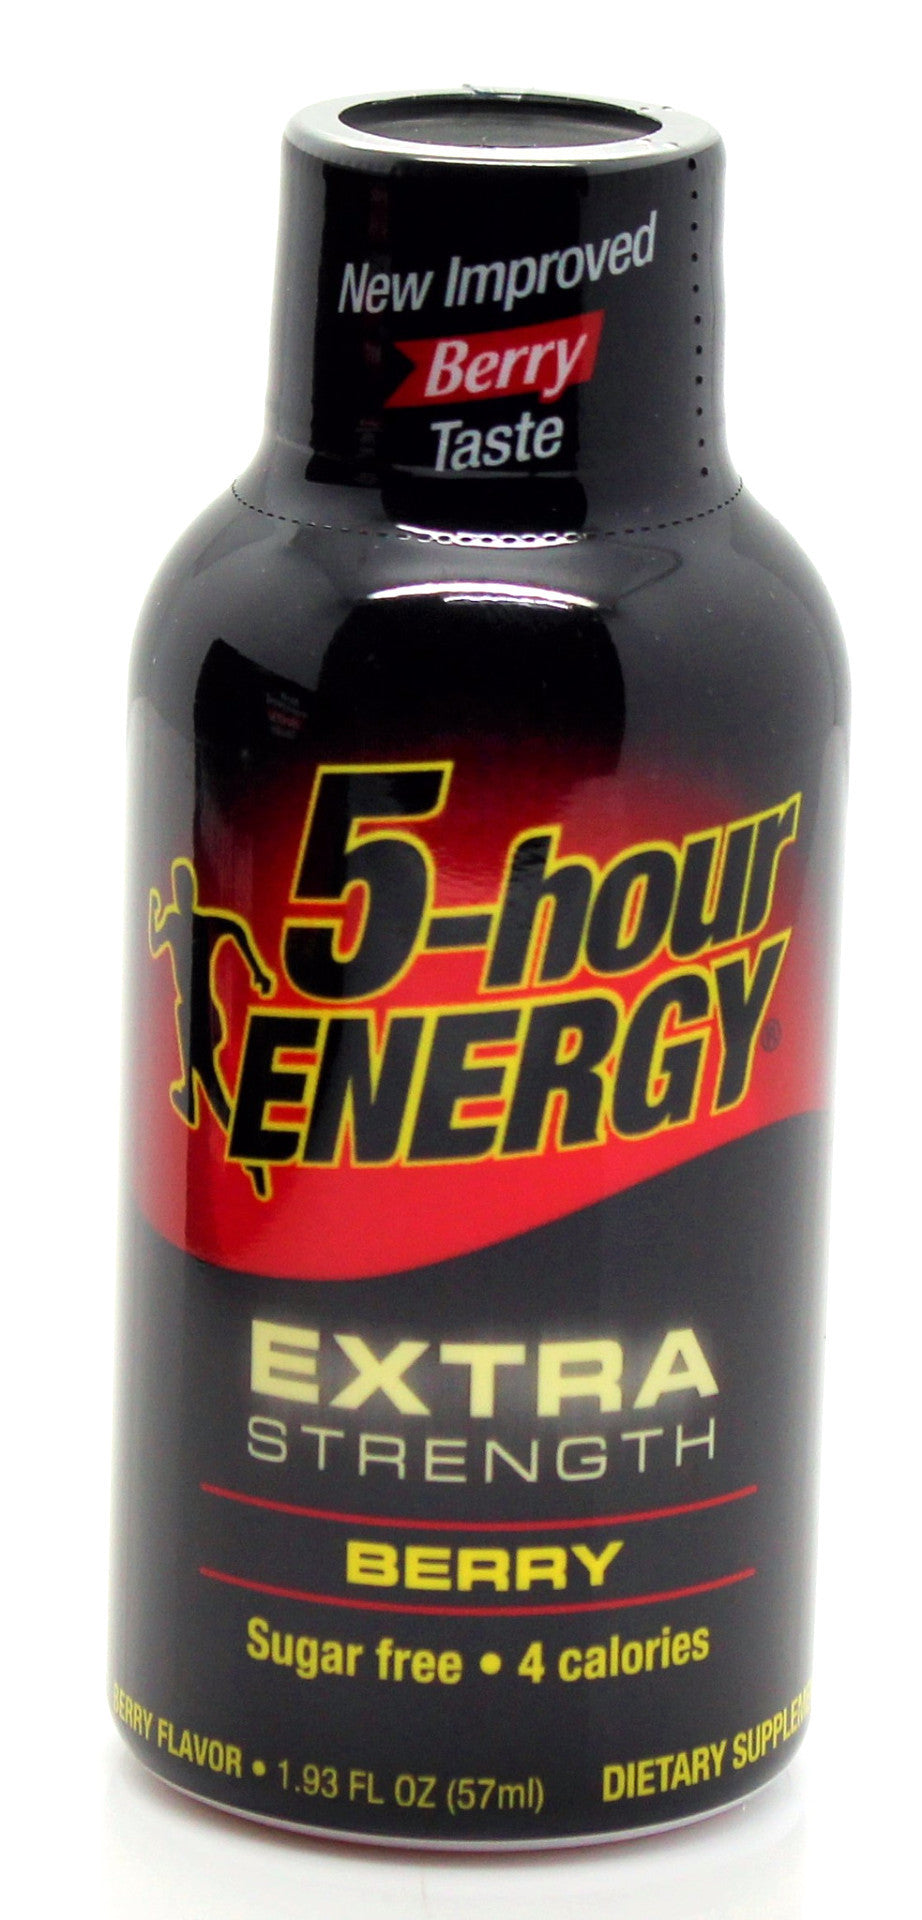 Extra Strength Ginkgo 120 Mg: 5-HOUR ENERGY EXTRA STRENGTH BERRY